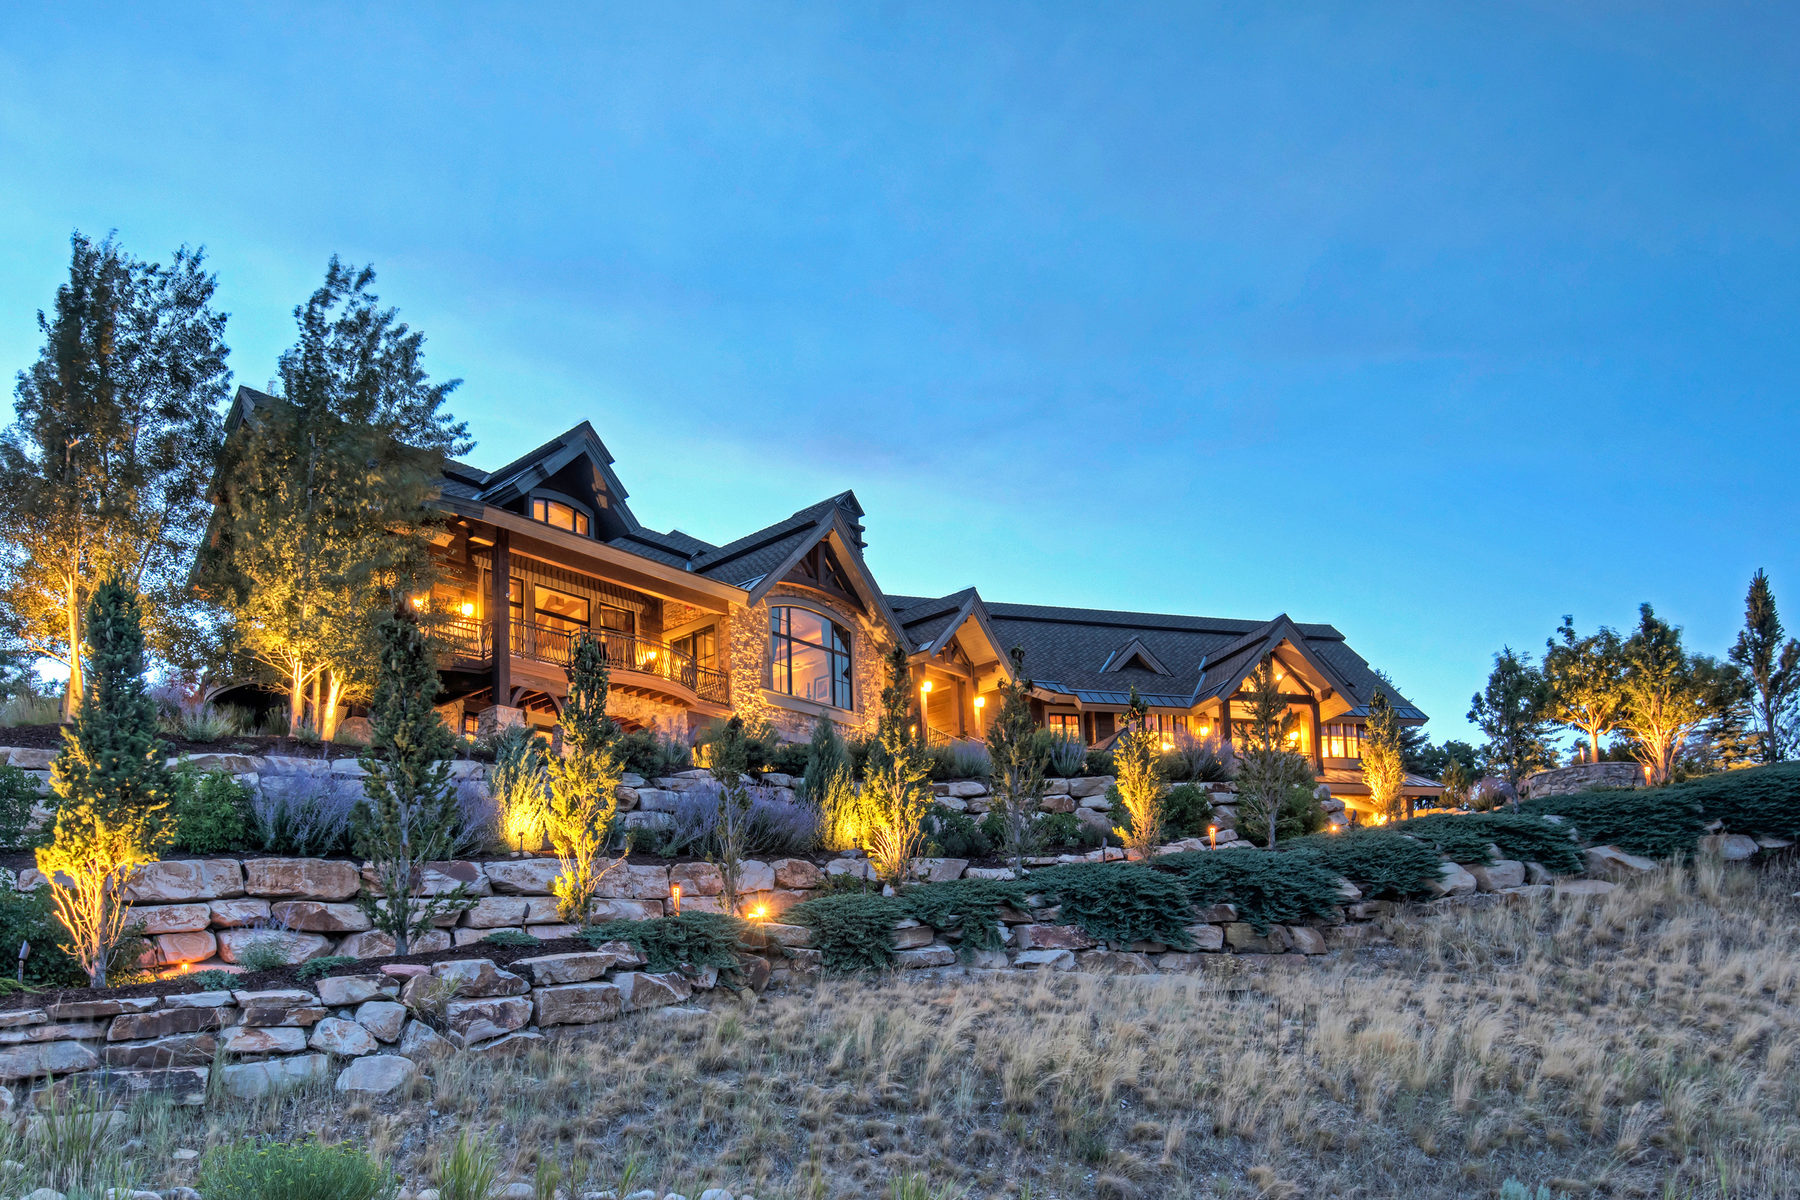 Частный односемейный дом для того Продажа на Great Deer Valley, Park City, Uinta Views! Fabulous Promontory Home! 8053 N Sunrise Loop Lot #47 Park City, Юта, 84098 Соединенные Штаты